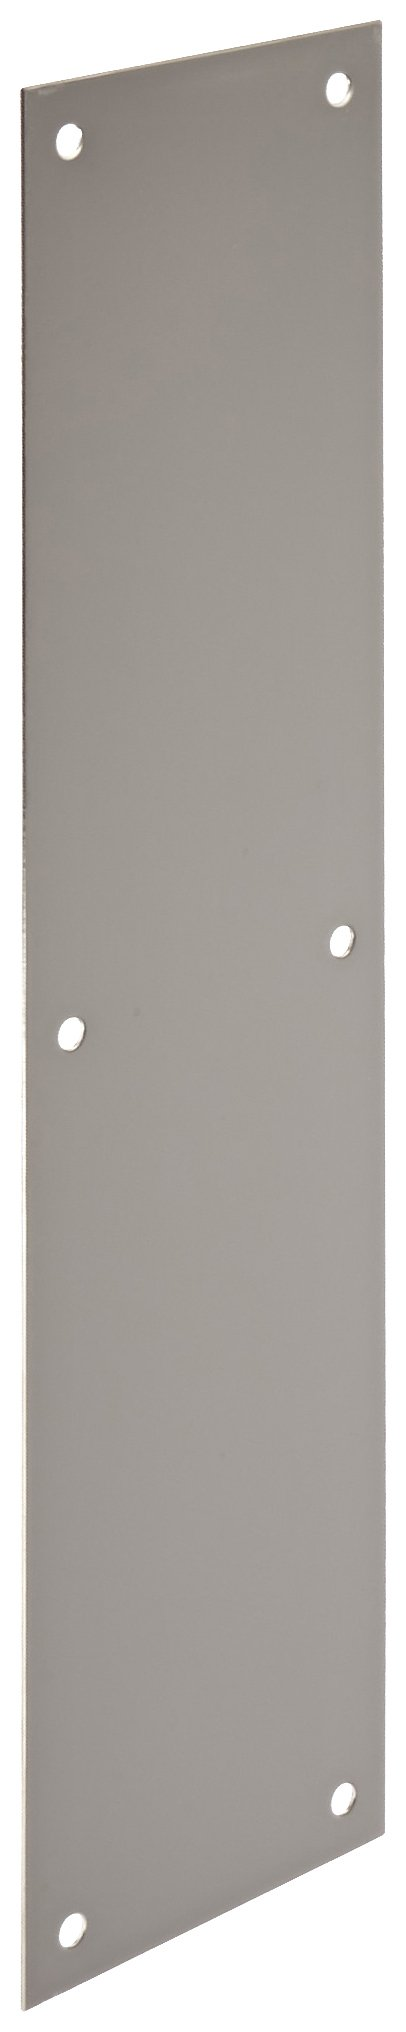 Rockwood 70C.32 Stainless Steel Standard Push Plate, Four Beveled Edges, 16'' Height x 4'' Width x 0.050'' Thick, Polished Finish